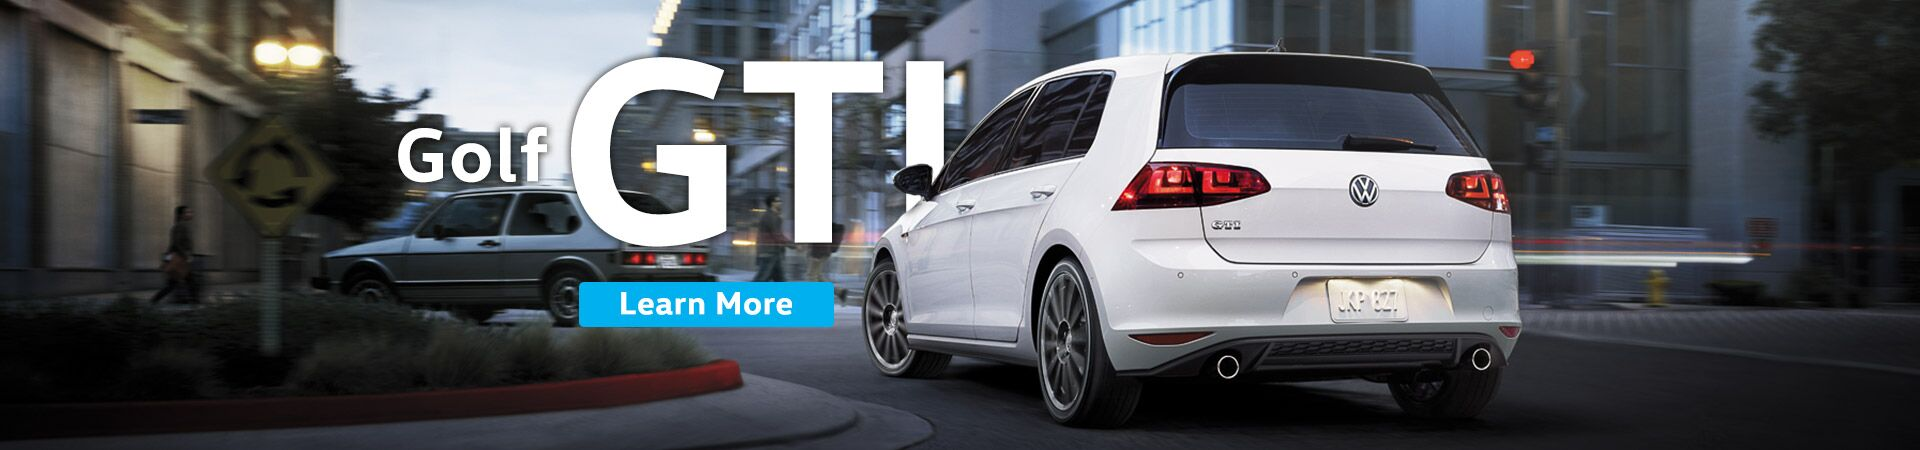 New Golf GTI at Volkswagen of South Mississippi